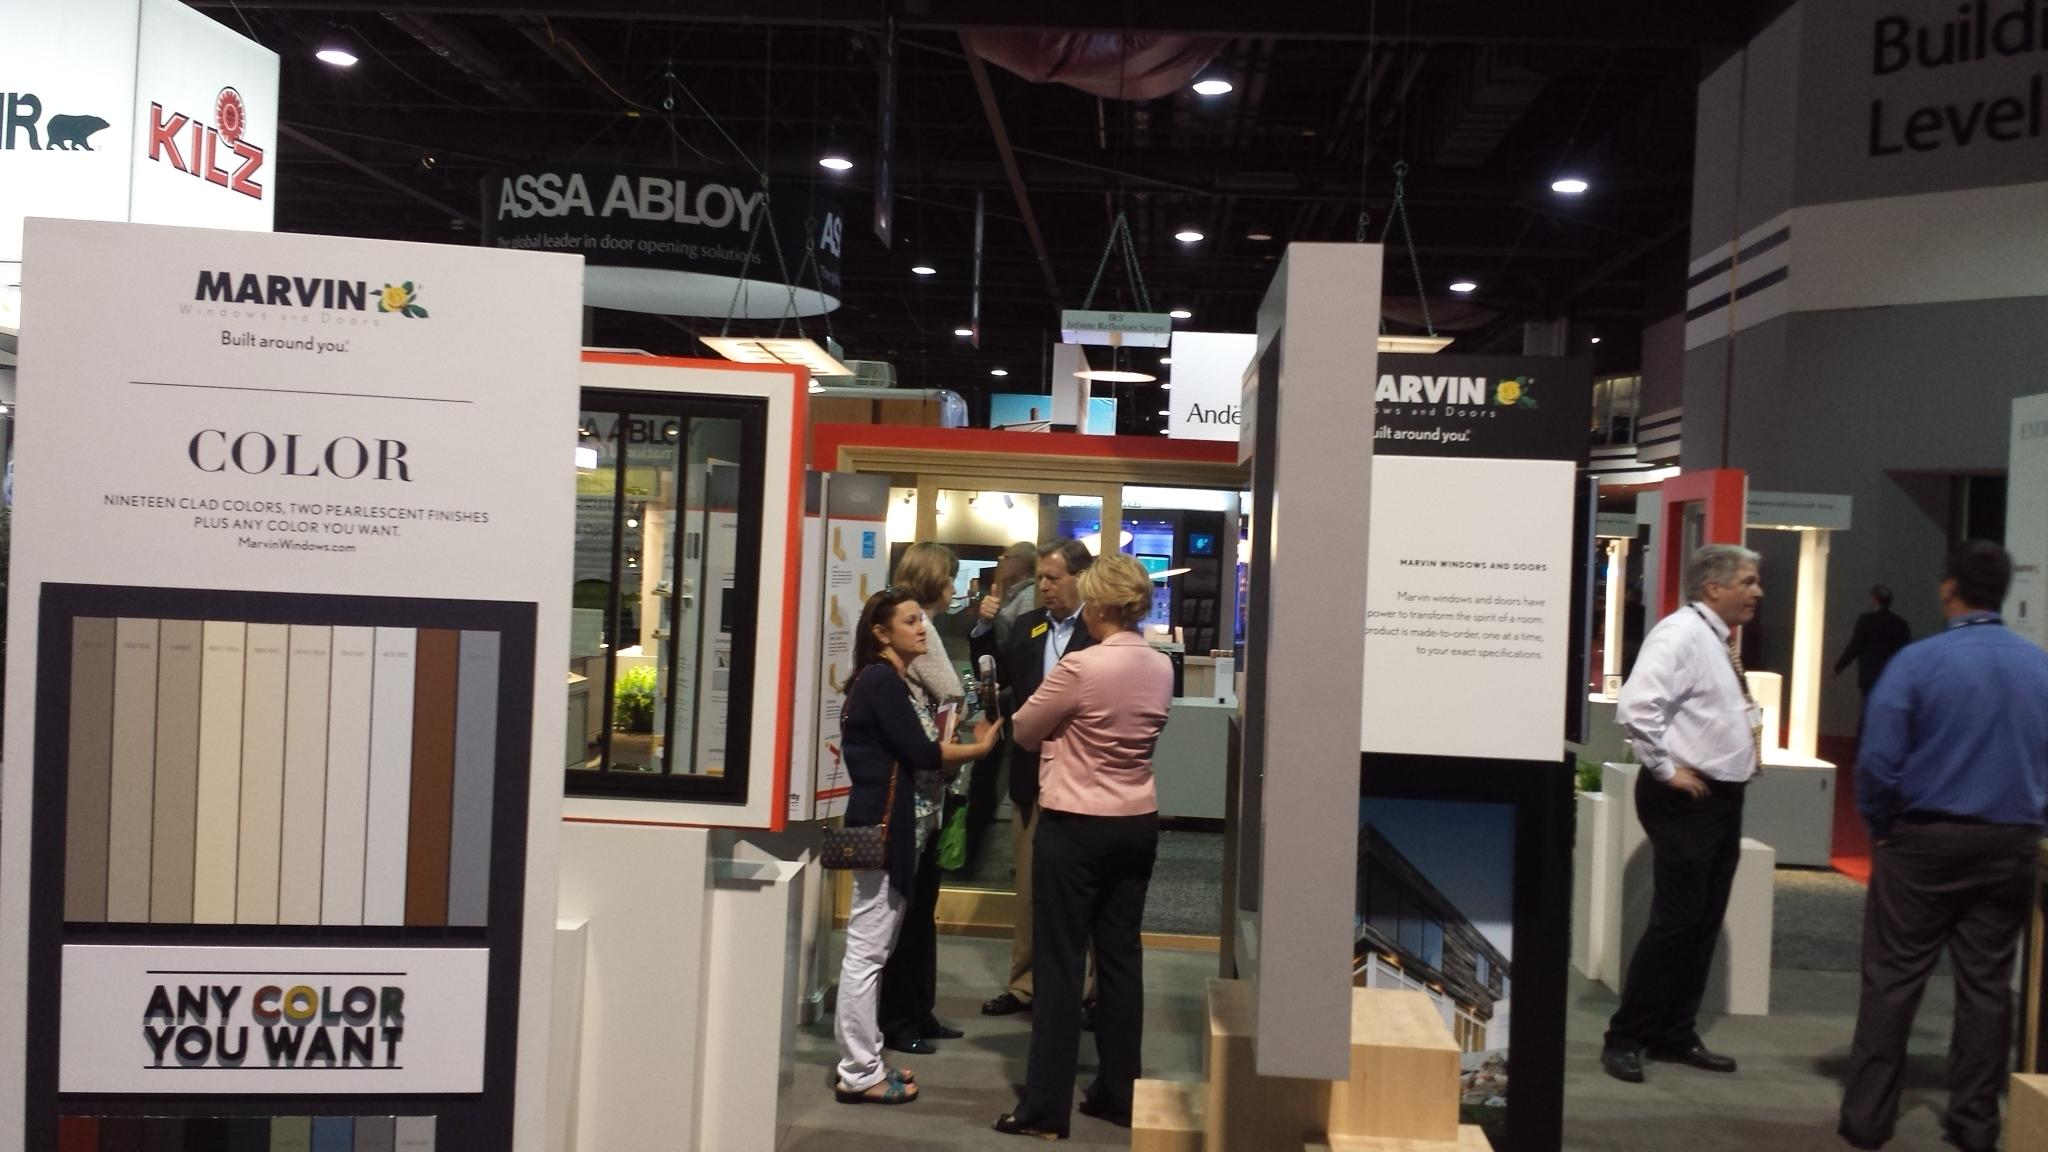 Marvin Booth at AIA Convention 2015